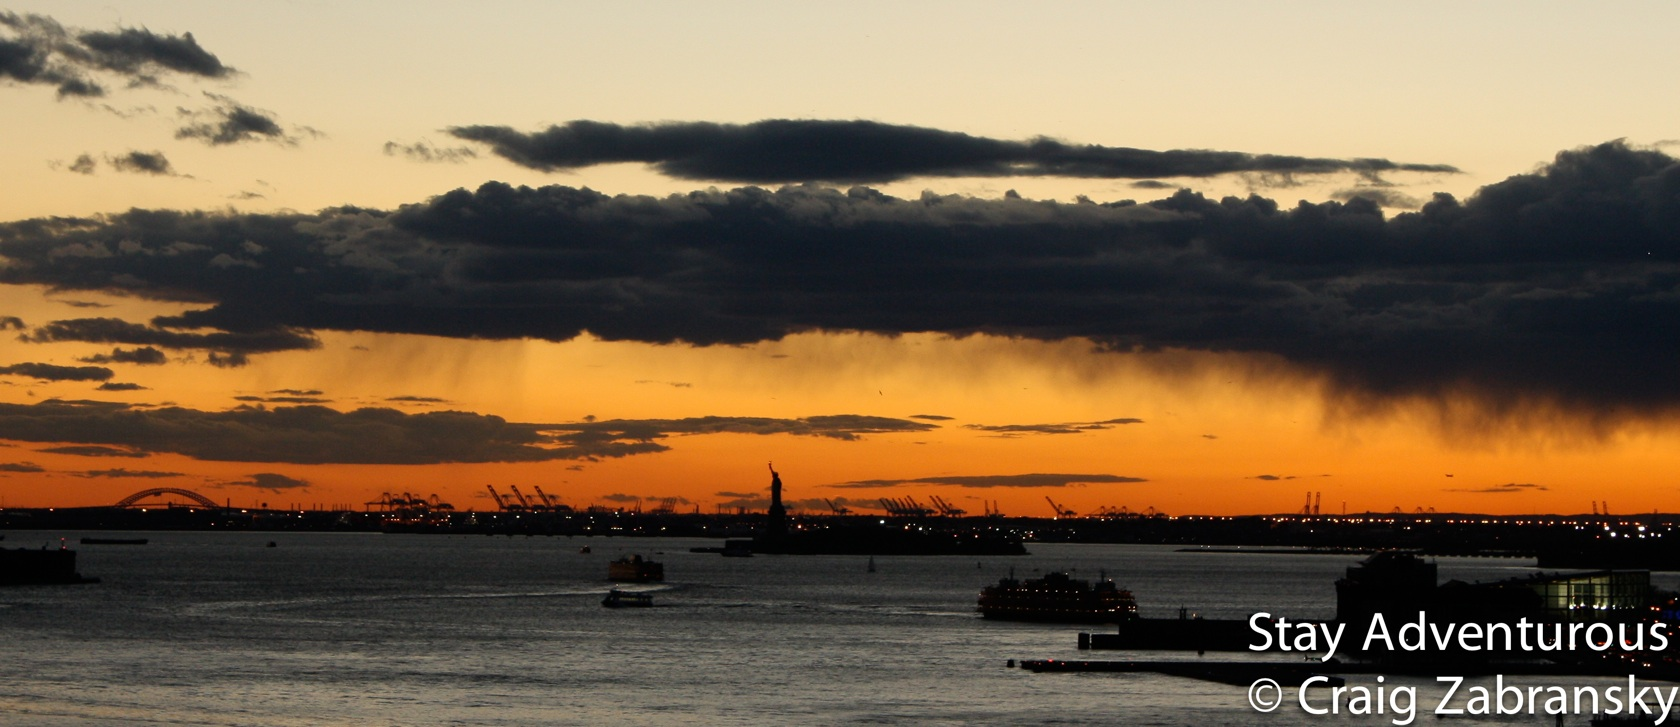 Statue of Liberty at sunset from the Brooklyn Bridge in New York